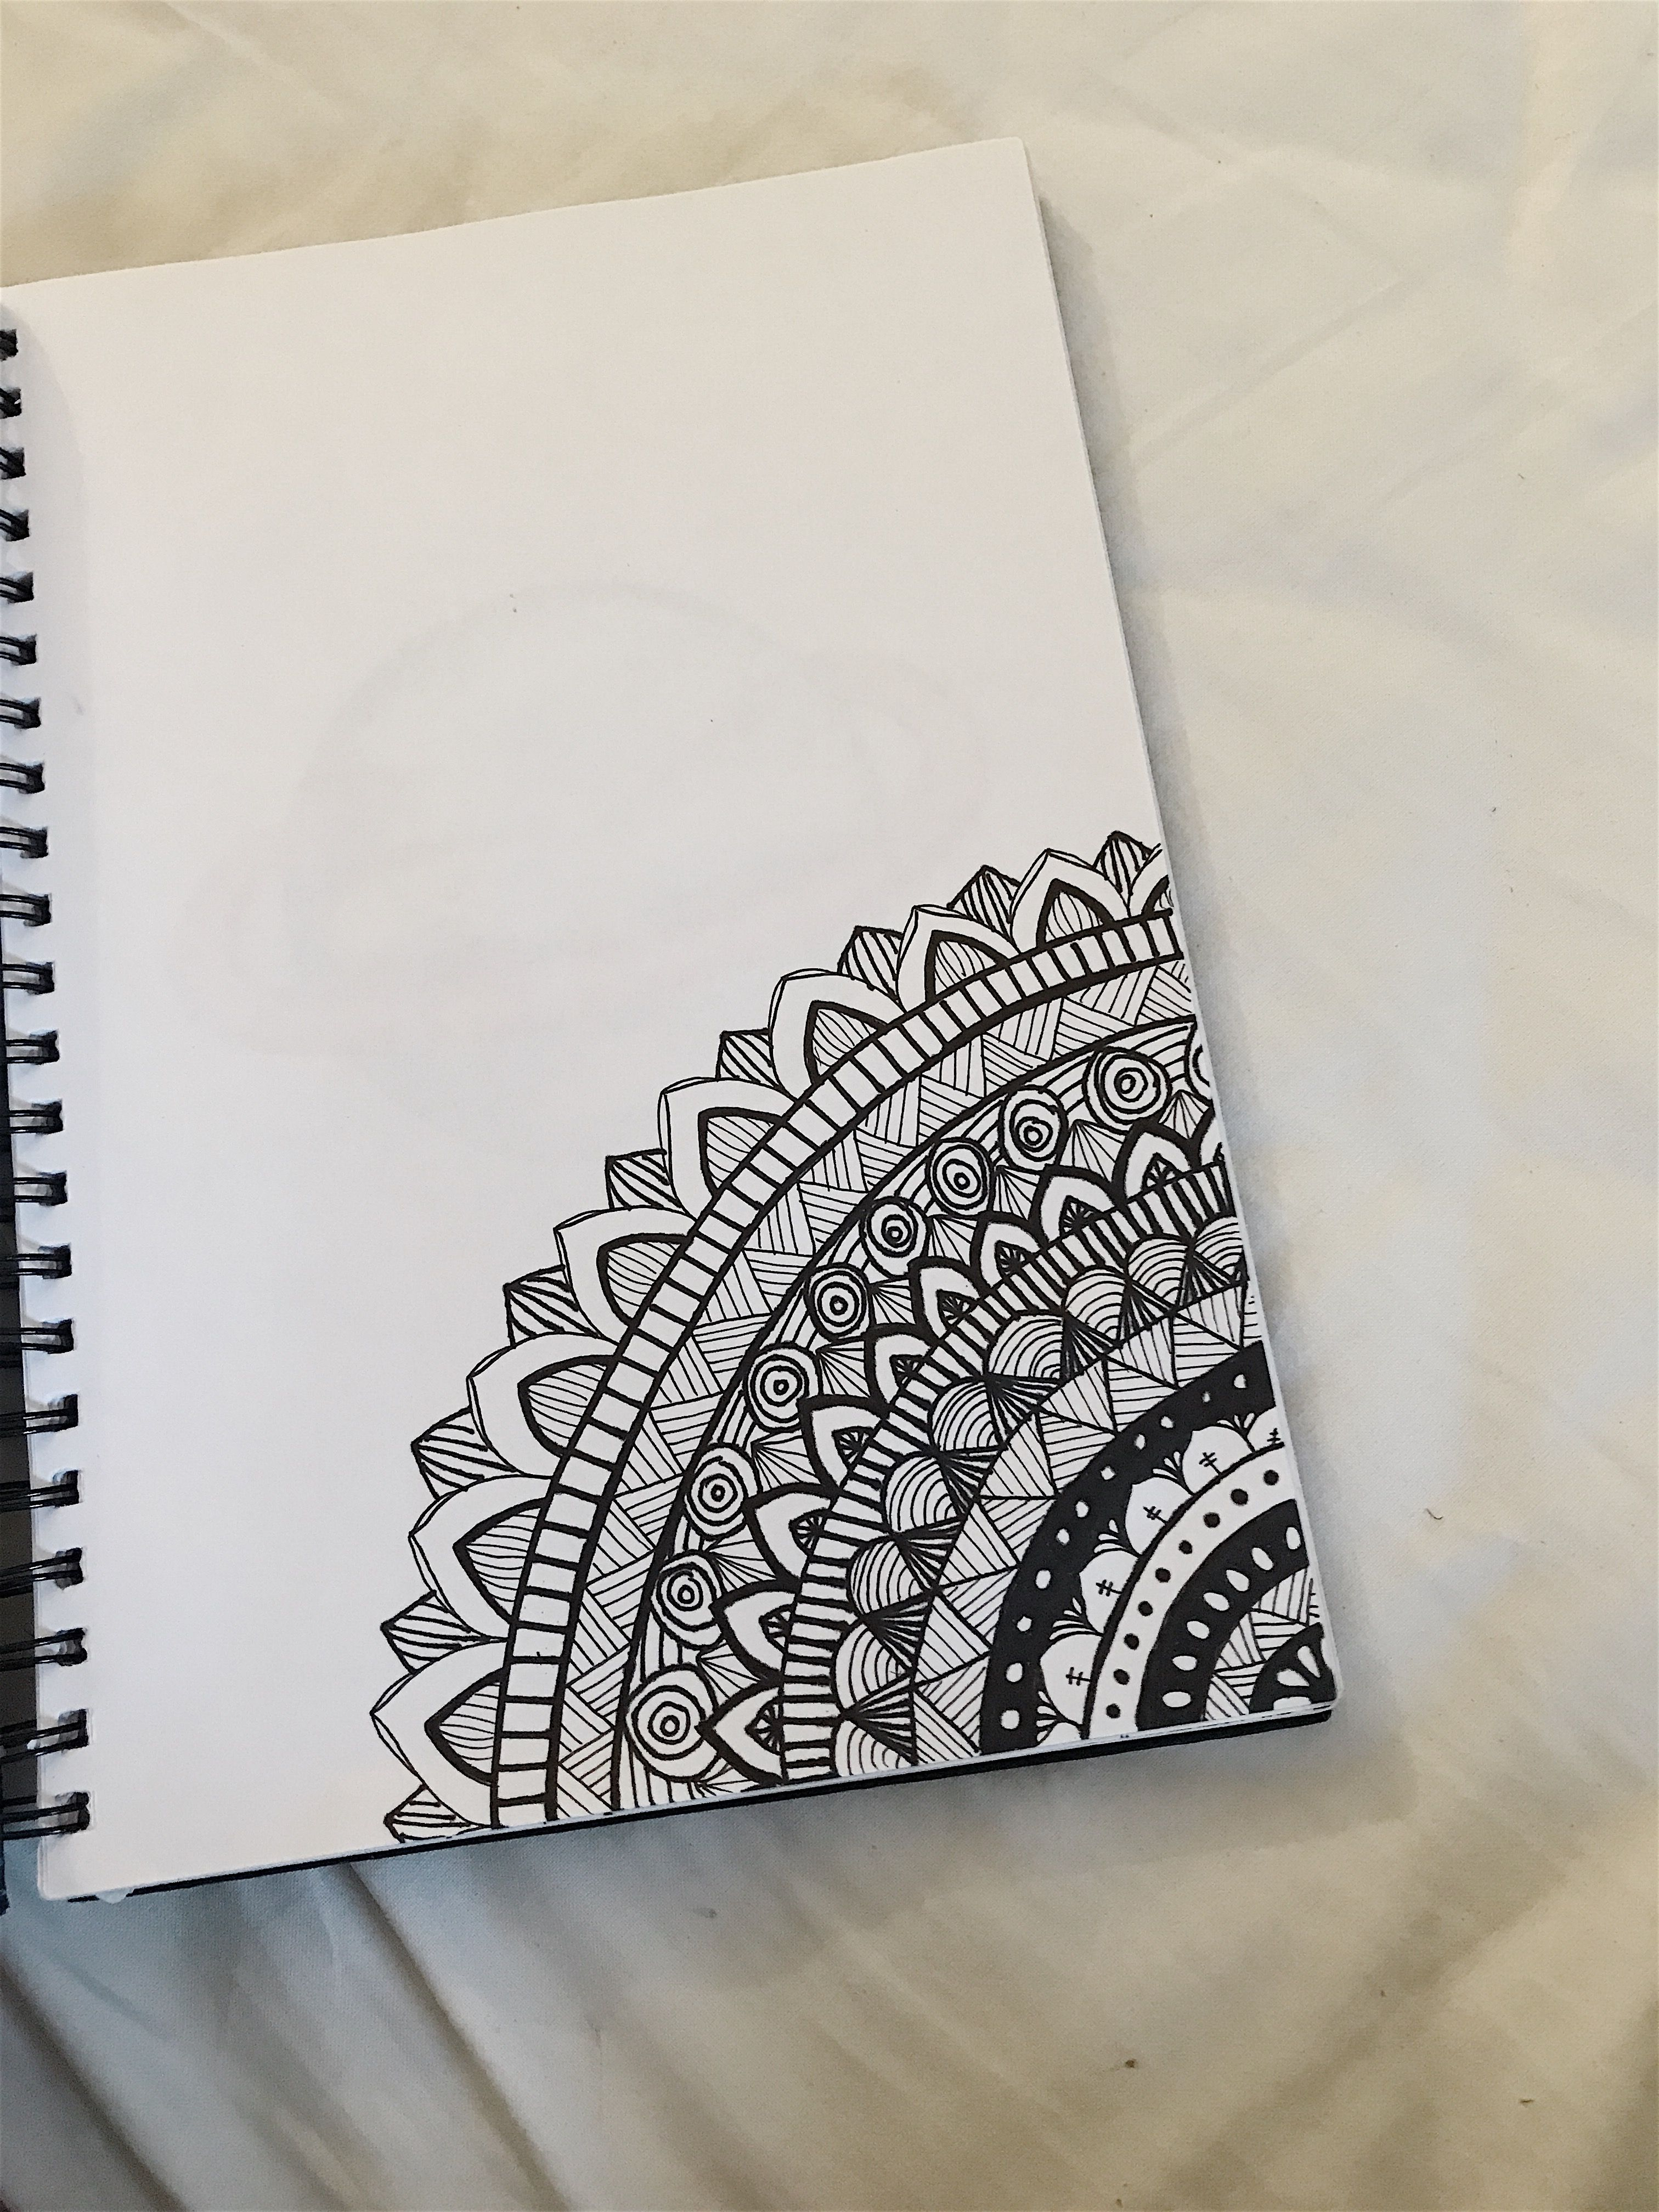 #drawing #mandala #easy | My drawings | Pinterest ...